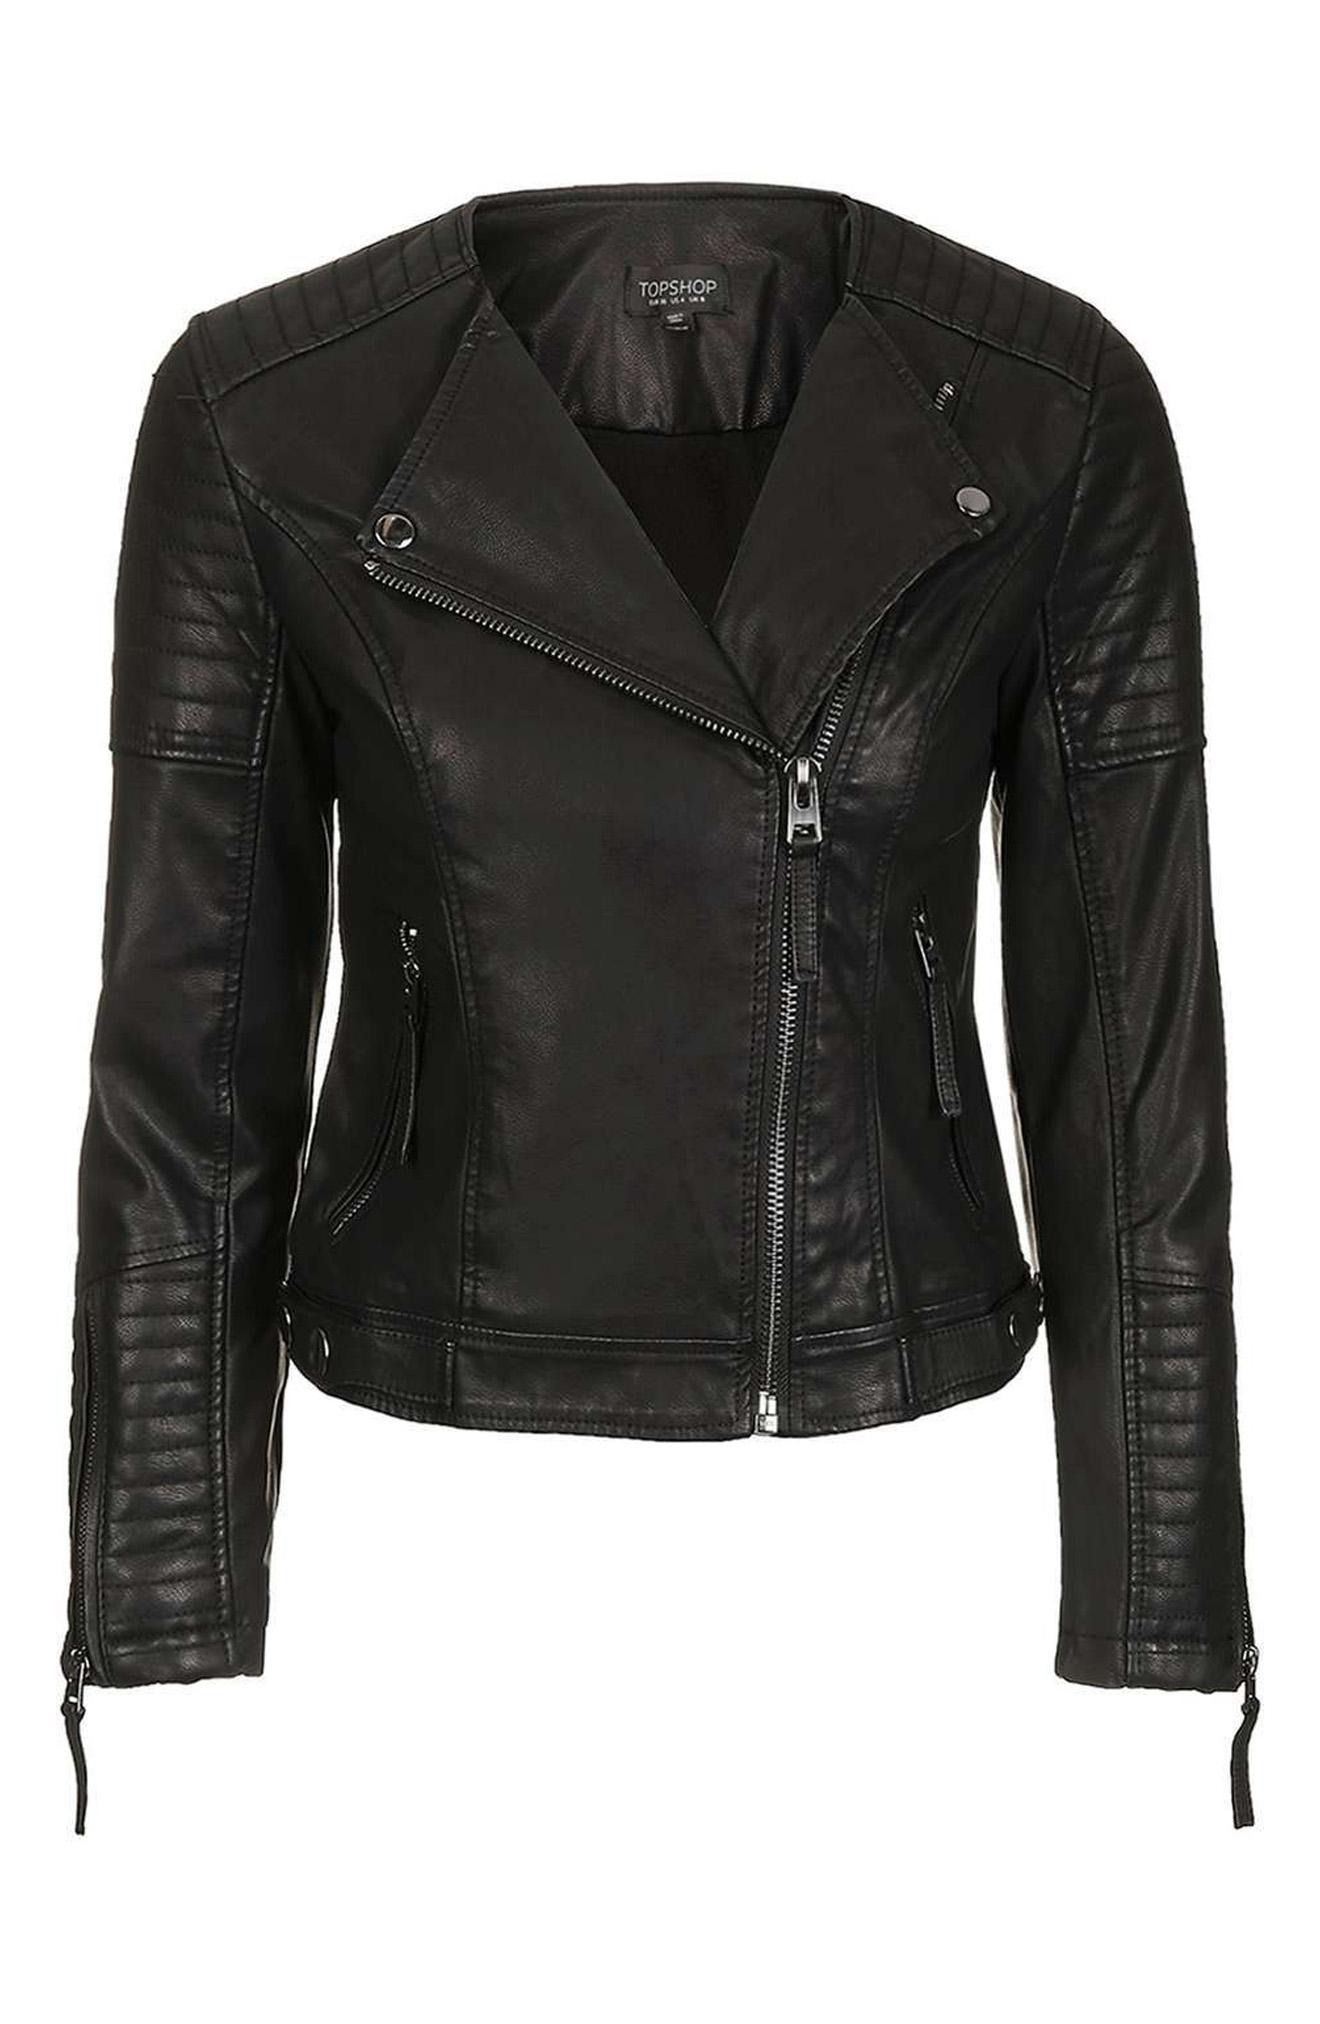 Topshop Nelly Faux Leather Biker Jacket from Nordstrom // Price: $90 // (Photo courtesy: Nordstrom/Nordstrom.com)<p></p>